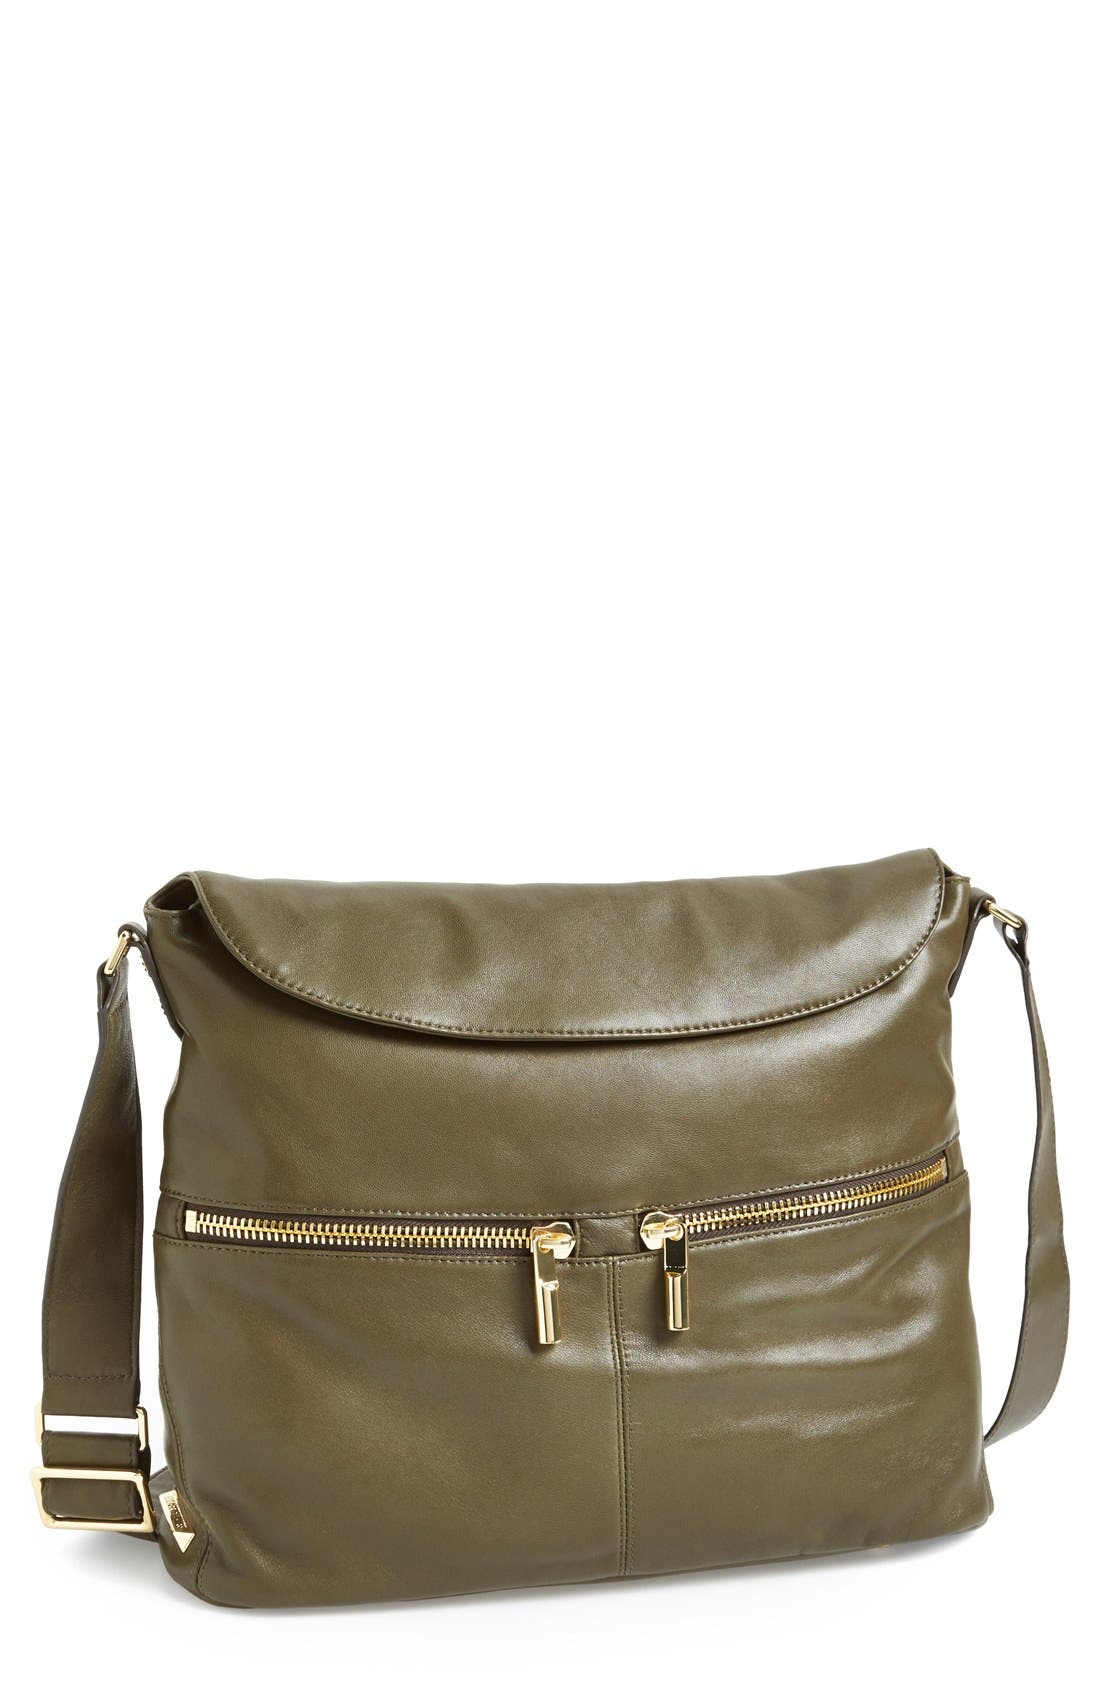 Main Image - Elizabeth and James 'James' Convertible Leather Hobo